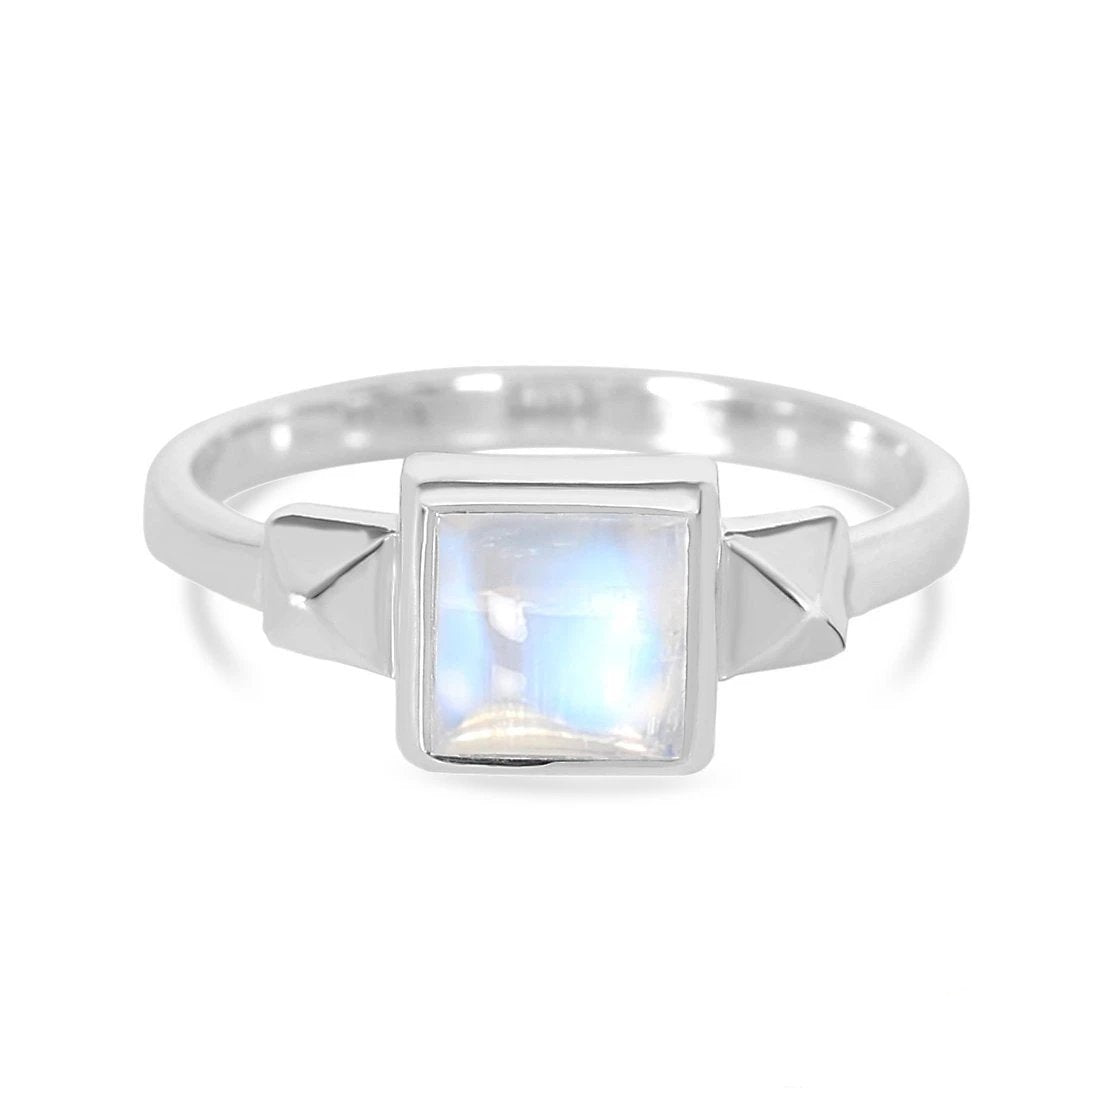 Moonstone Ring-Favor-S Moonstone Ring 925 SILVER & MOONSTONE 10 Silver Square-6 mm